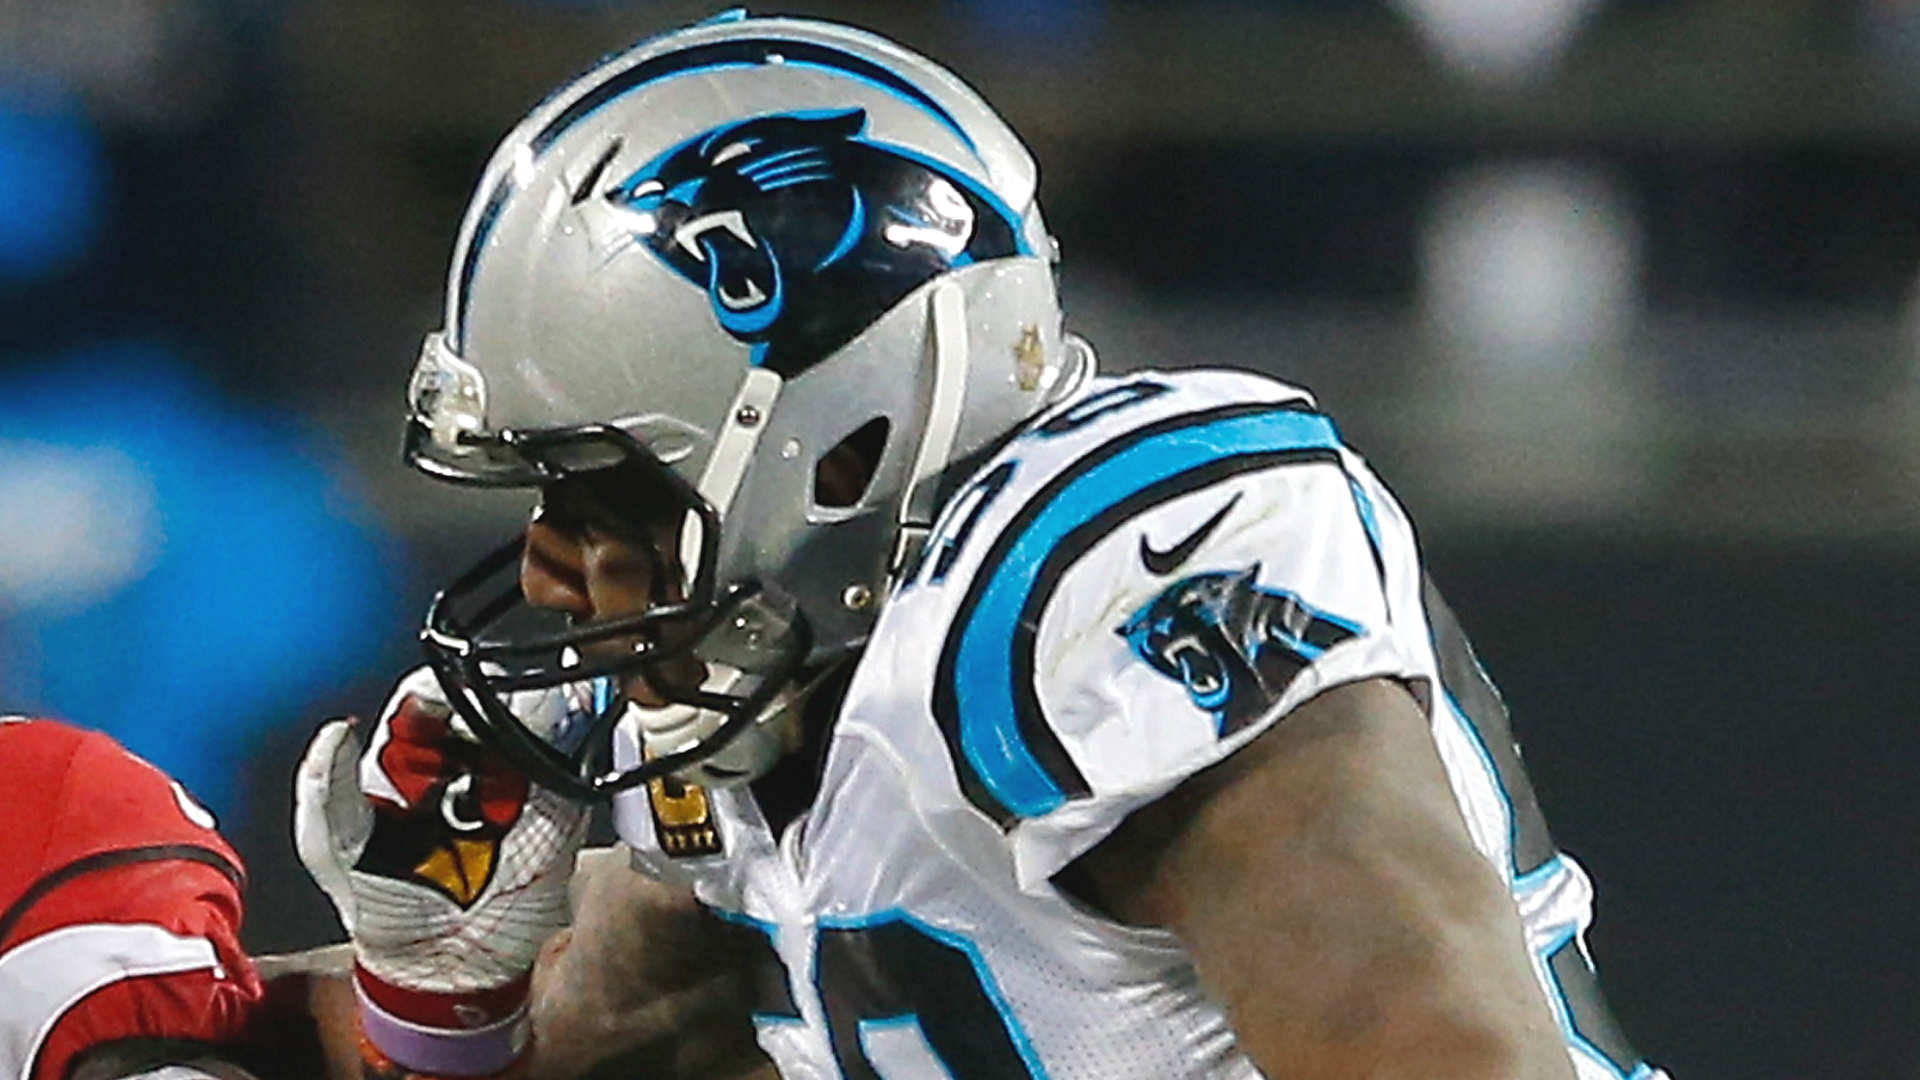 Panthers Thomas Davis insists he ll play in Super Bowl despite